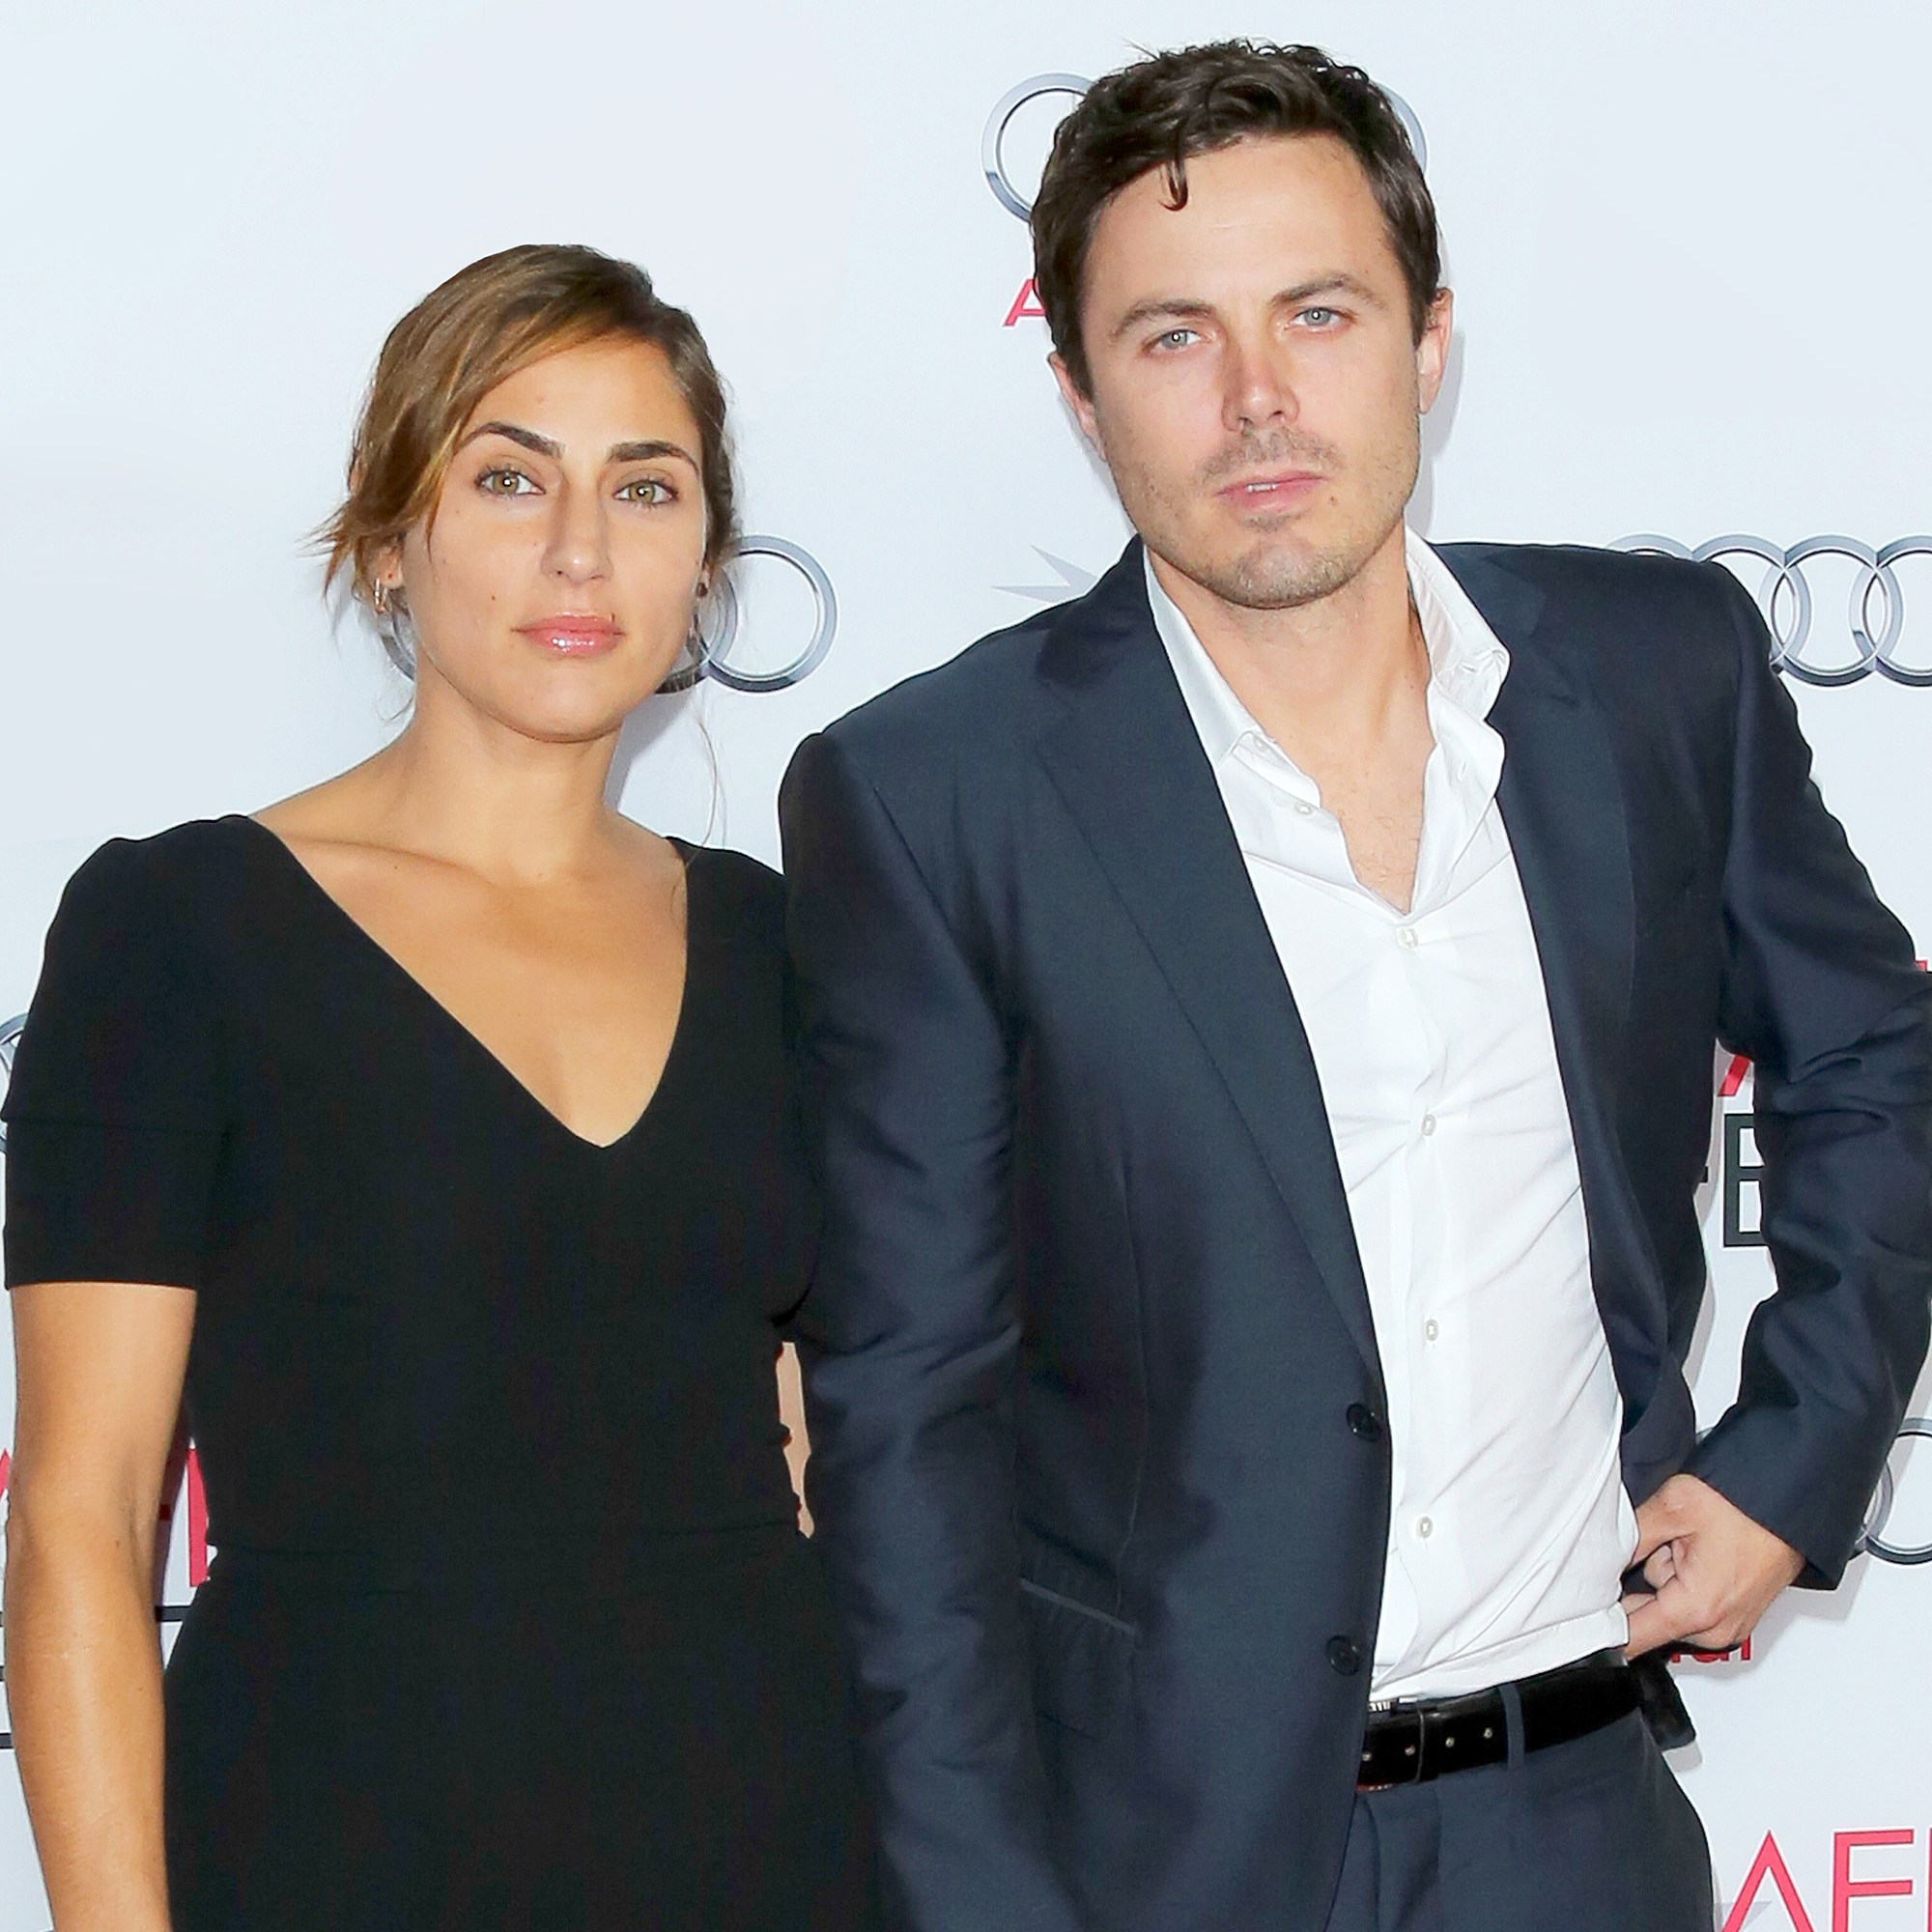 Casey Affleck and Summer Phoenix attend the AFI FEST 2013 at the TCL Chinese Theatre in Hollywood, California.